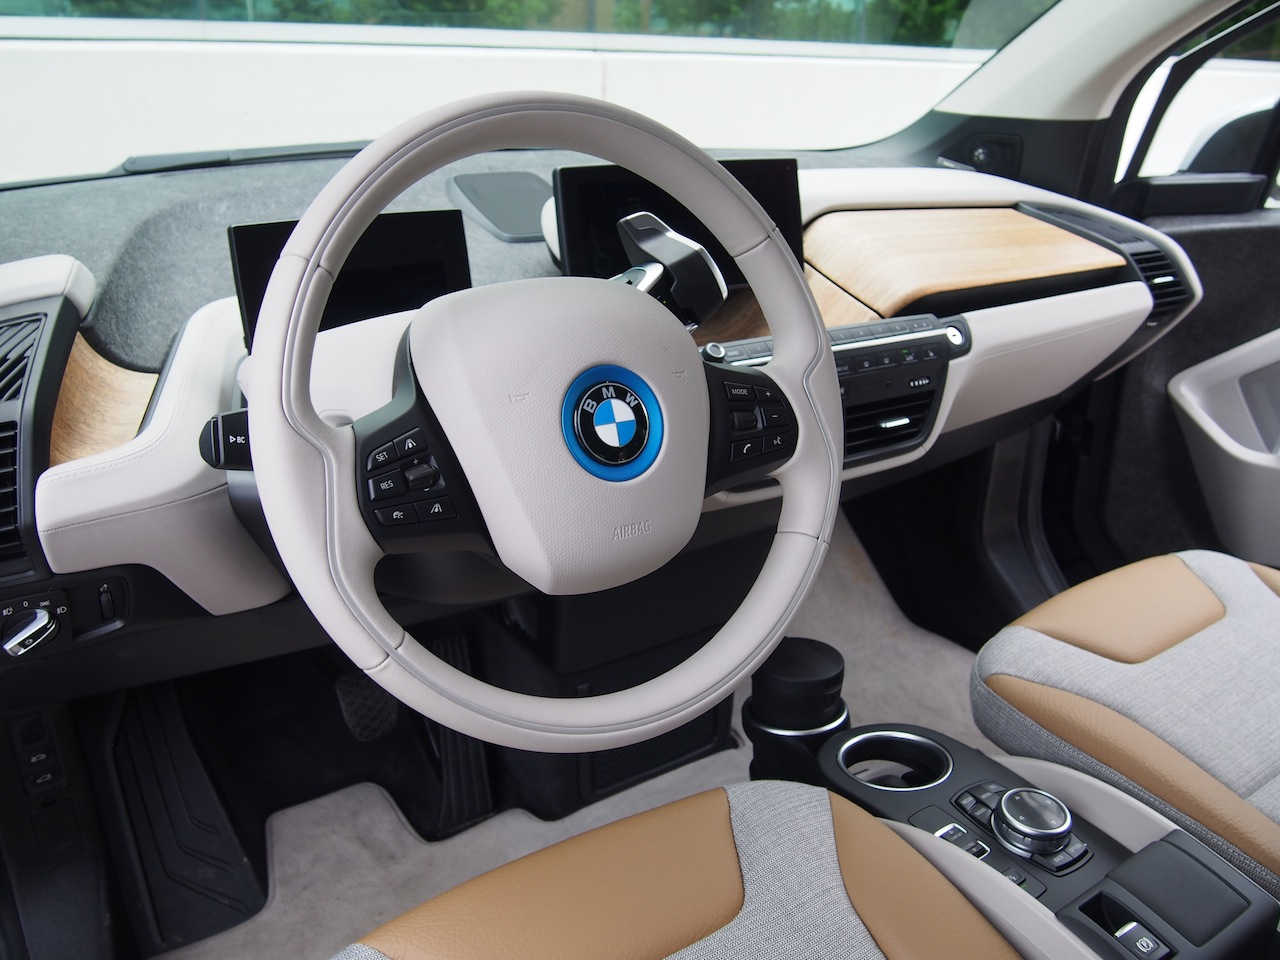 2014 bmw i3 first drive - cars, photos, test drives, and reviews